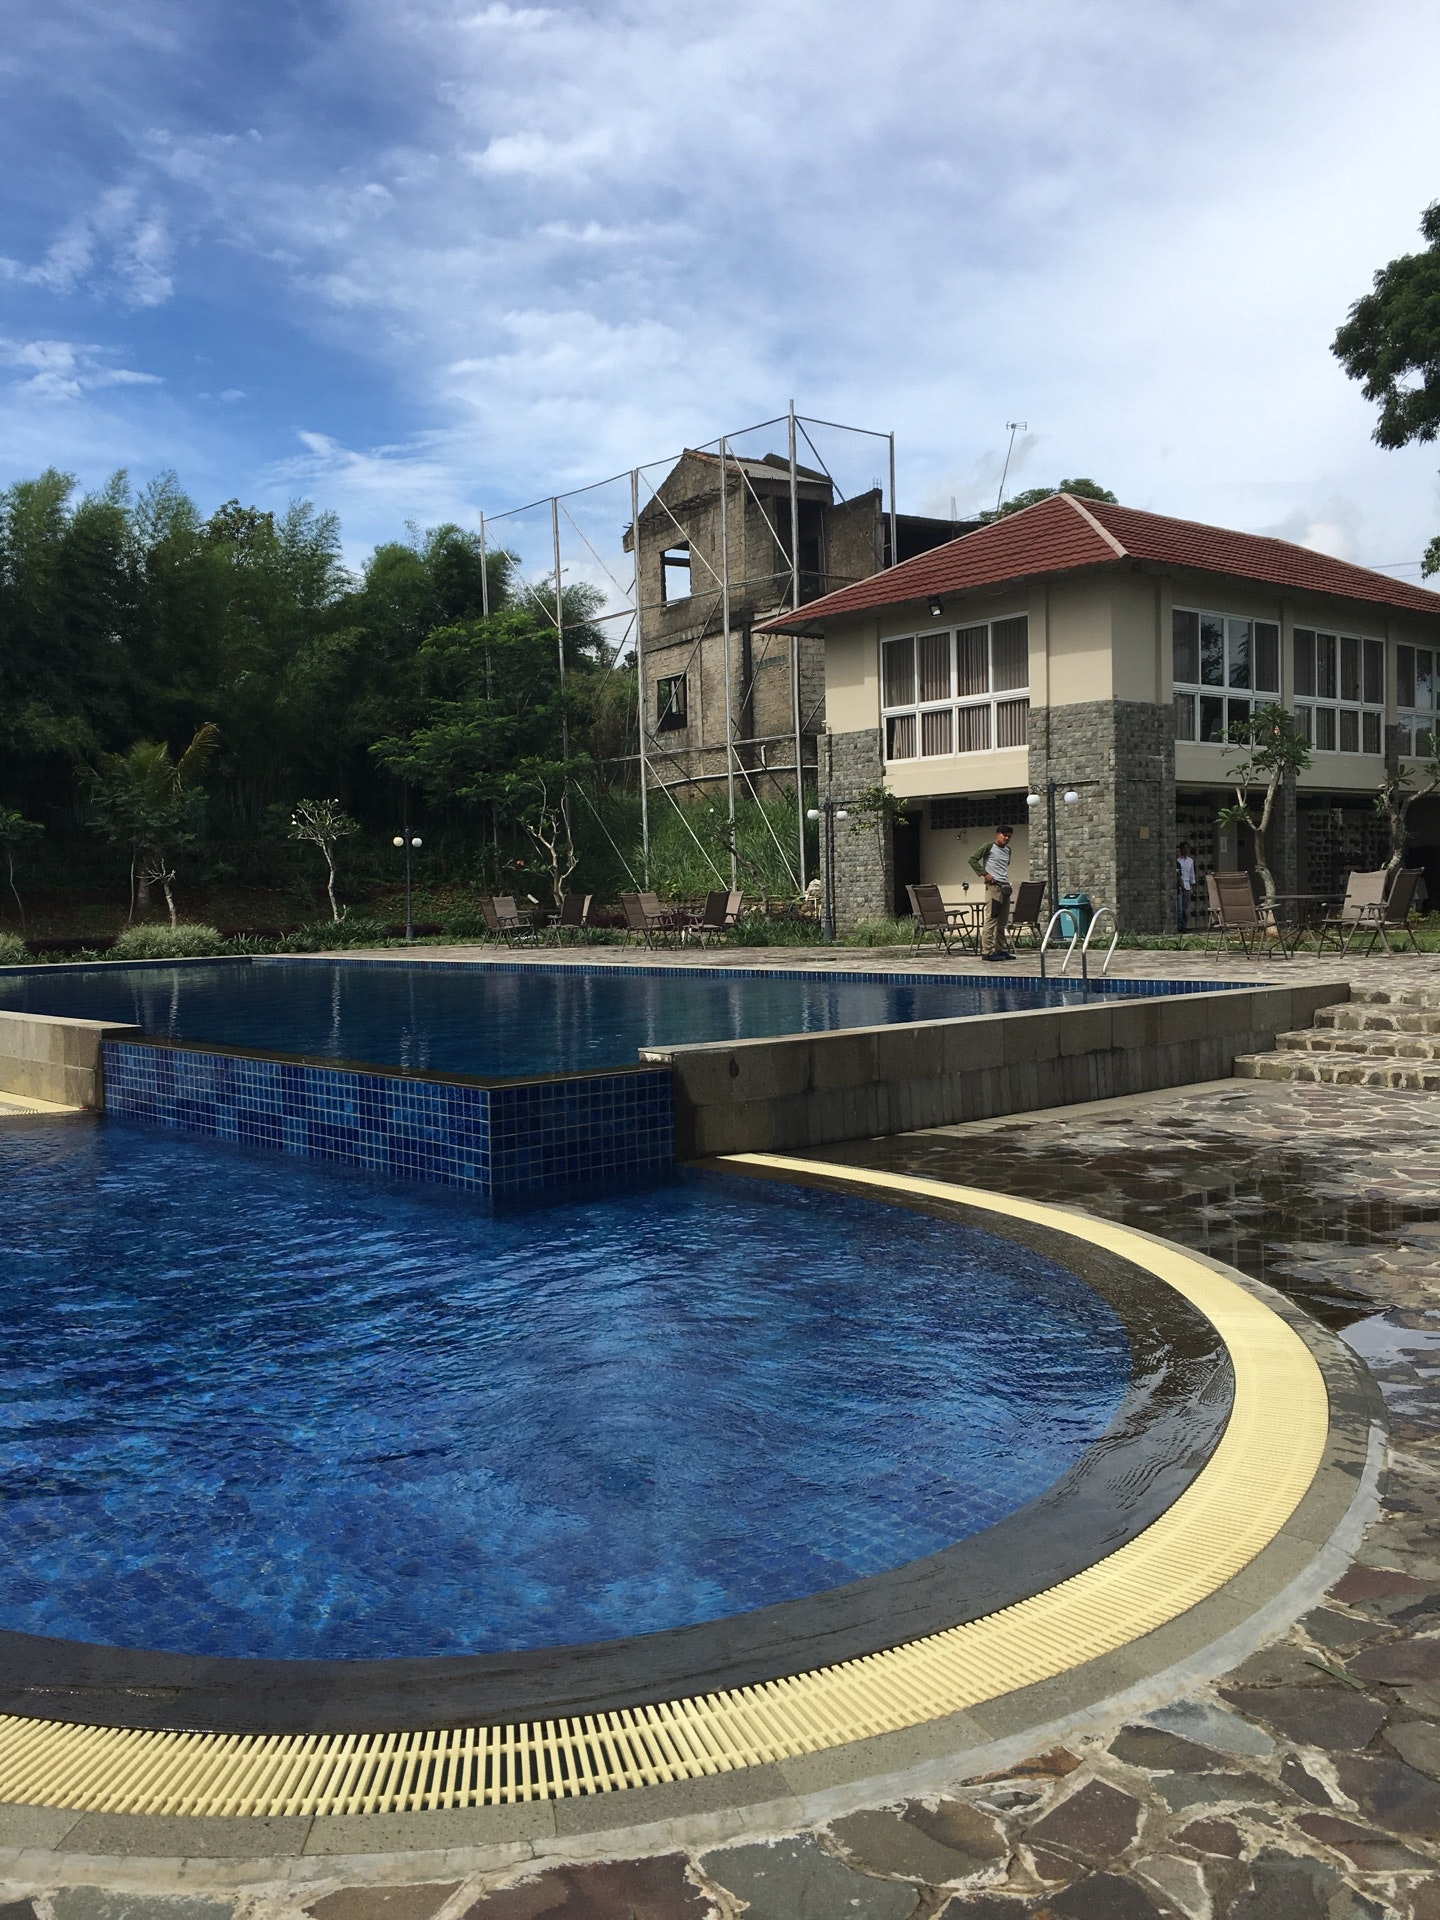 Forest Resort Hotel Prices Photos Reviews Address Indonesia Author Karman